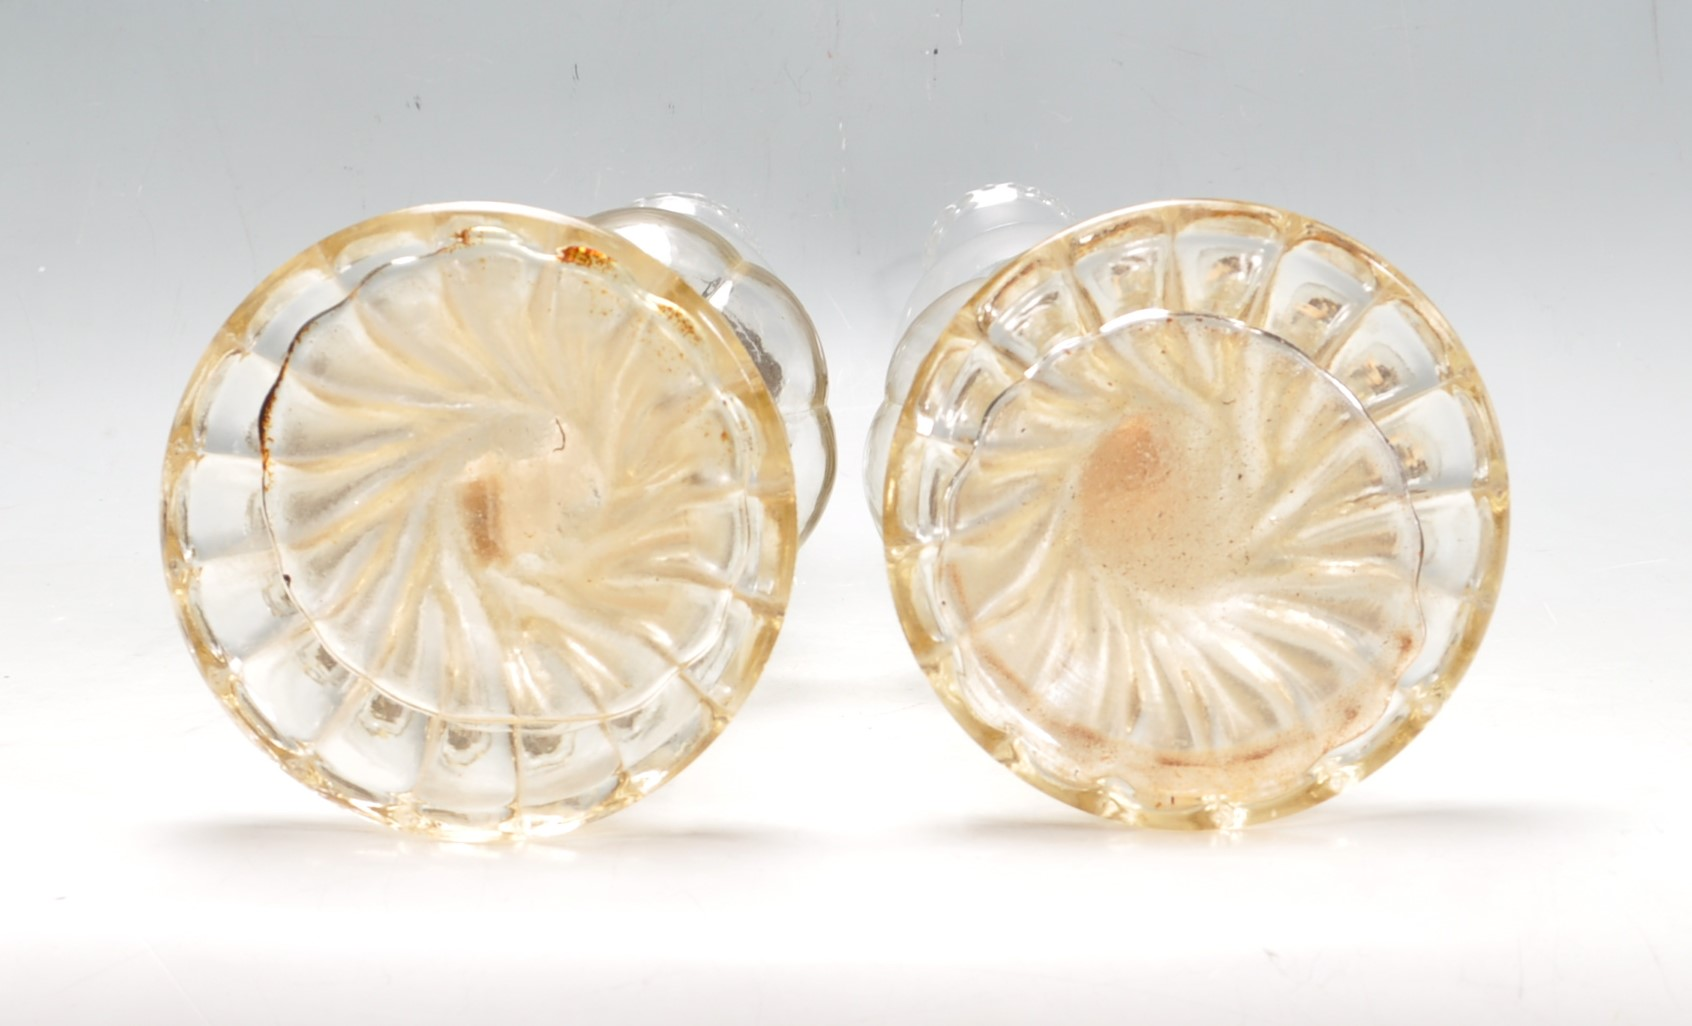 PAIR OF EARLY 20TH CENTURY 1930S ART DECO ERA GLASS OIL LAMPS - Image 3 of 4